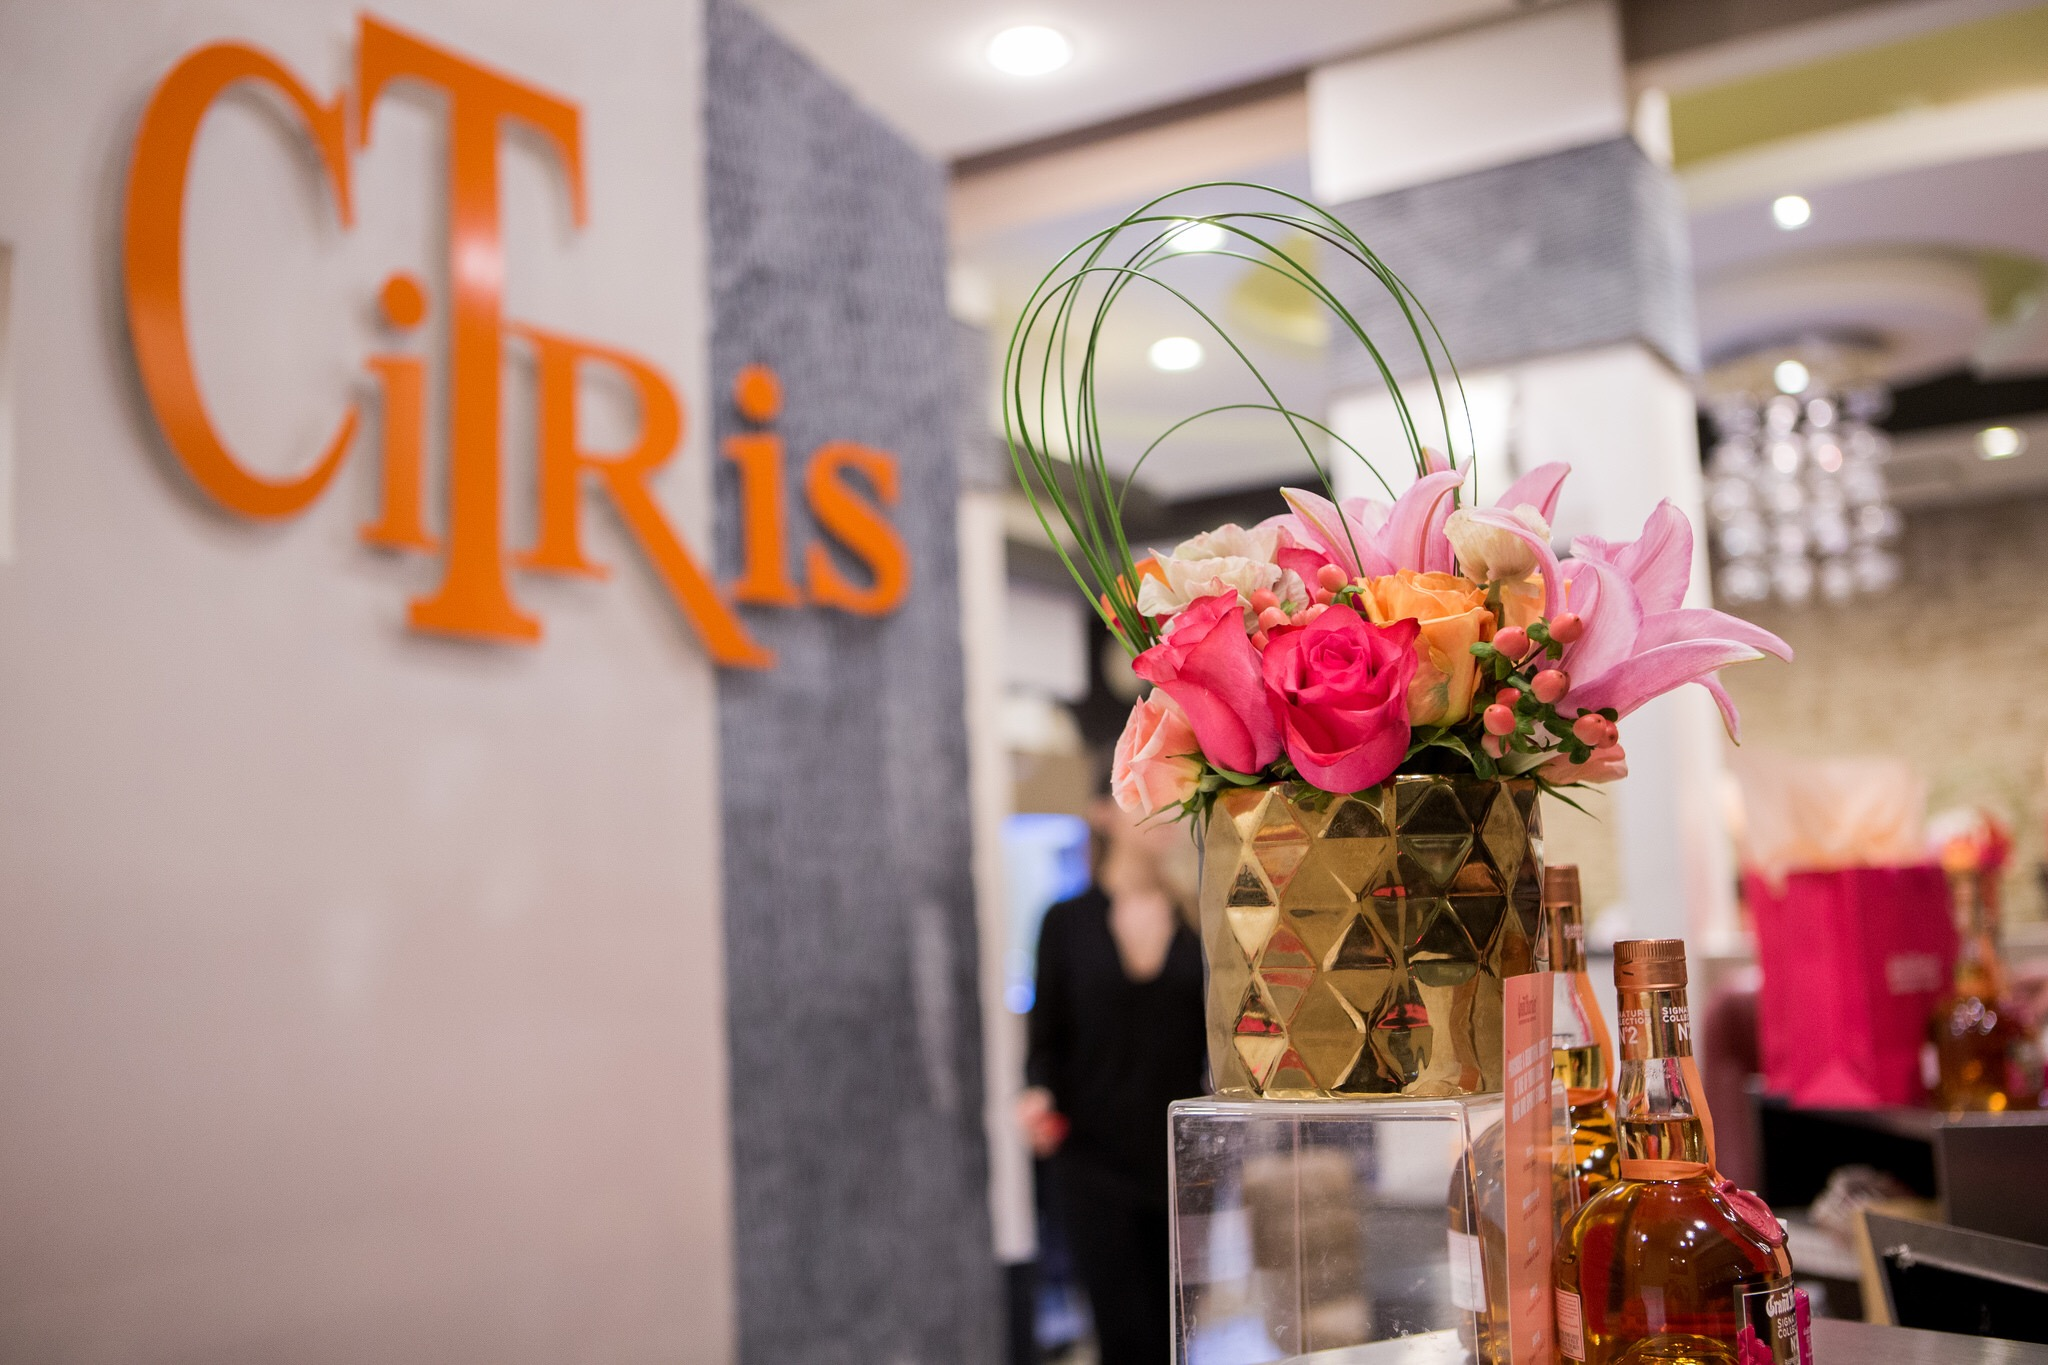 Houston Nail Salon - Citris Nails